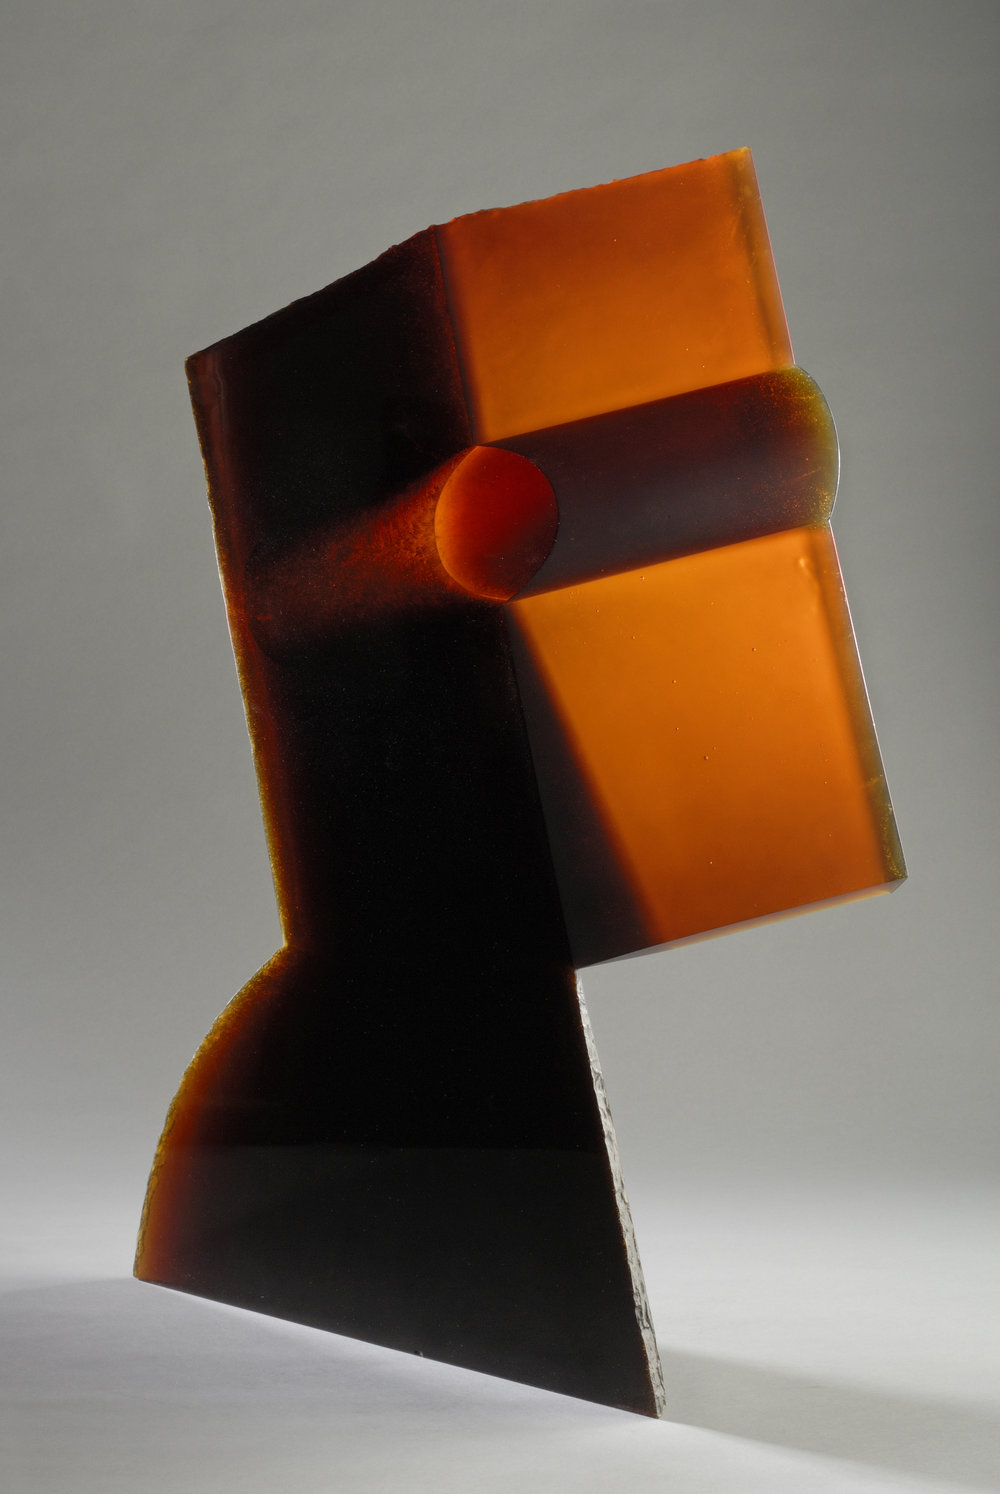 Jaroslava Brychtová (Czech, born 1924) and Stanislav Libenský (Czech, 1921 - 2002).  The Second Queen,  1991-1992. Mold-melted glass, cut and ground; 32 1/8 x 25 1/2 in. Collection of Museum of Glass, Tacoma, Washington, gift of Lisa and Dudley B. Anderson. Photo by Duncan Price.